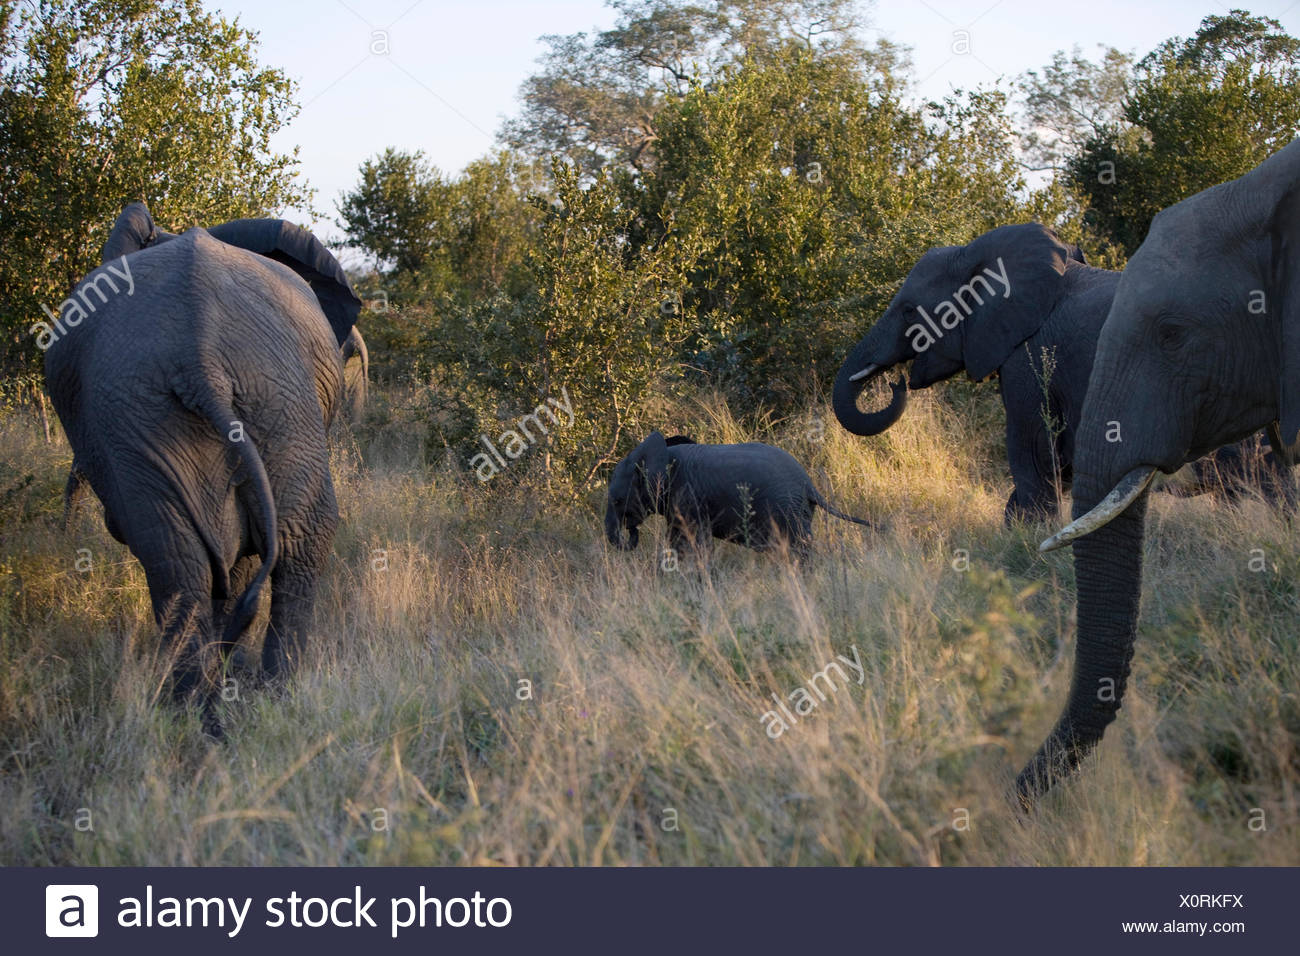 Herd of Elephants (Loxodonta africana) in bush, South Africa - Stock Image